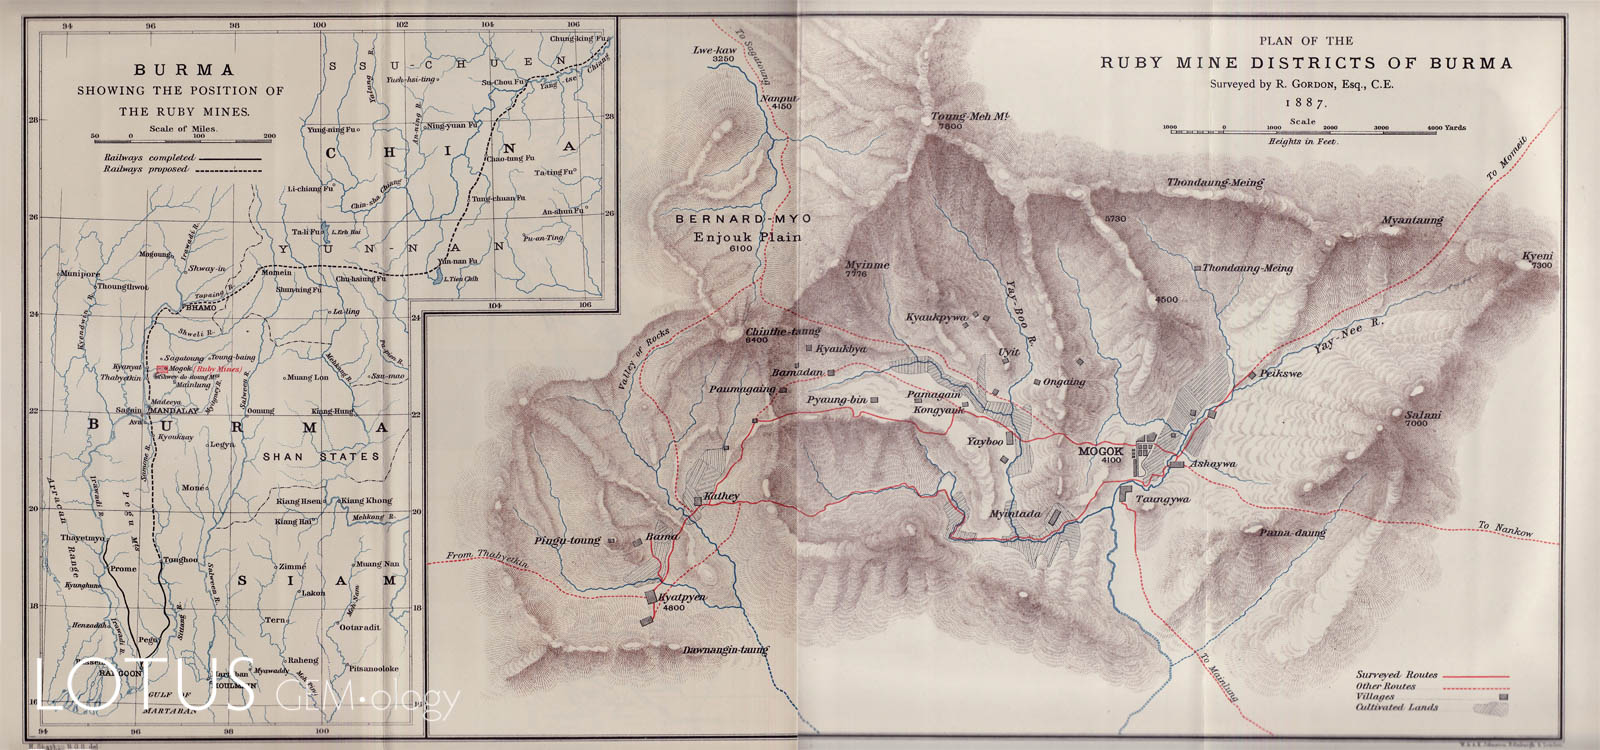 Robert Gordon was on the original British expedition to Mogok (Myanmar). His map, published by the Royal Geographical Society in 1888, was the first detailed map of the region. Click on the map for a larger image.